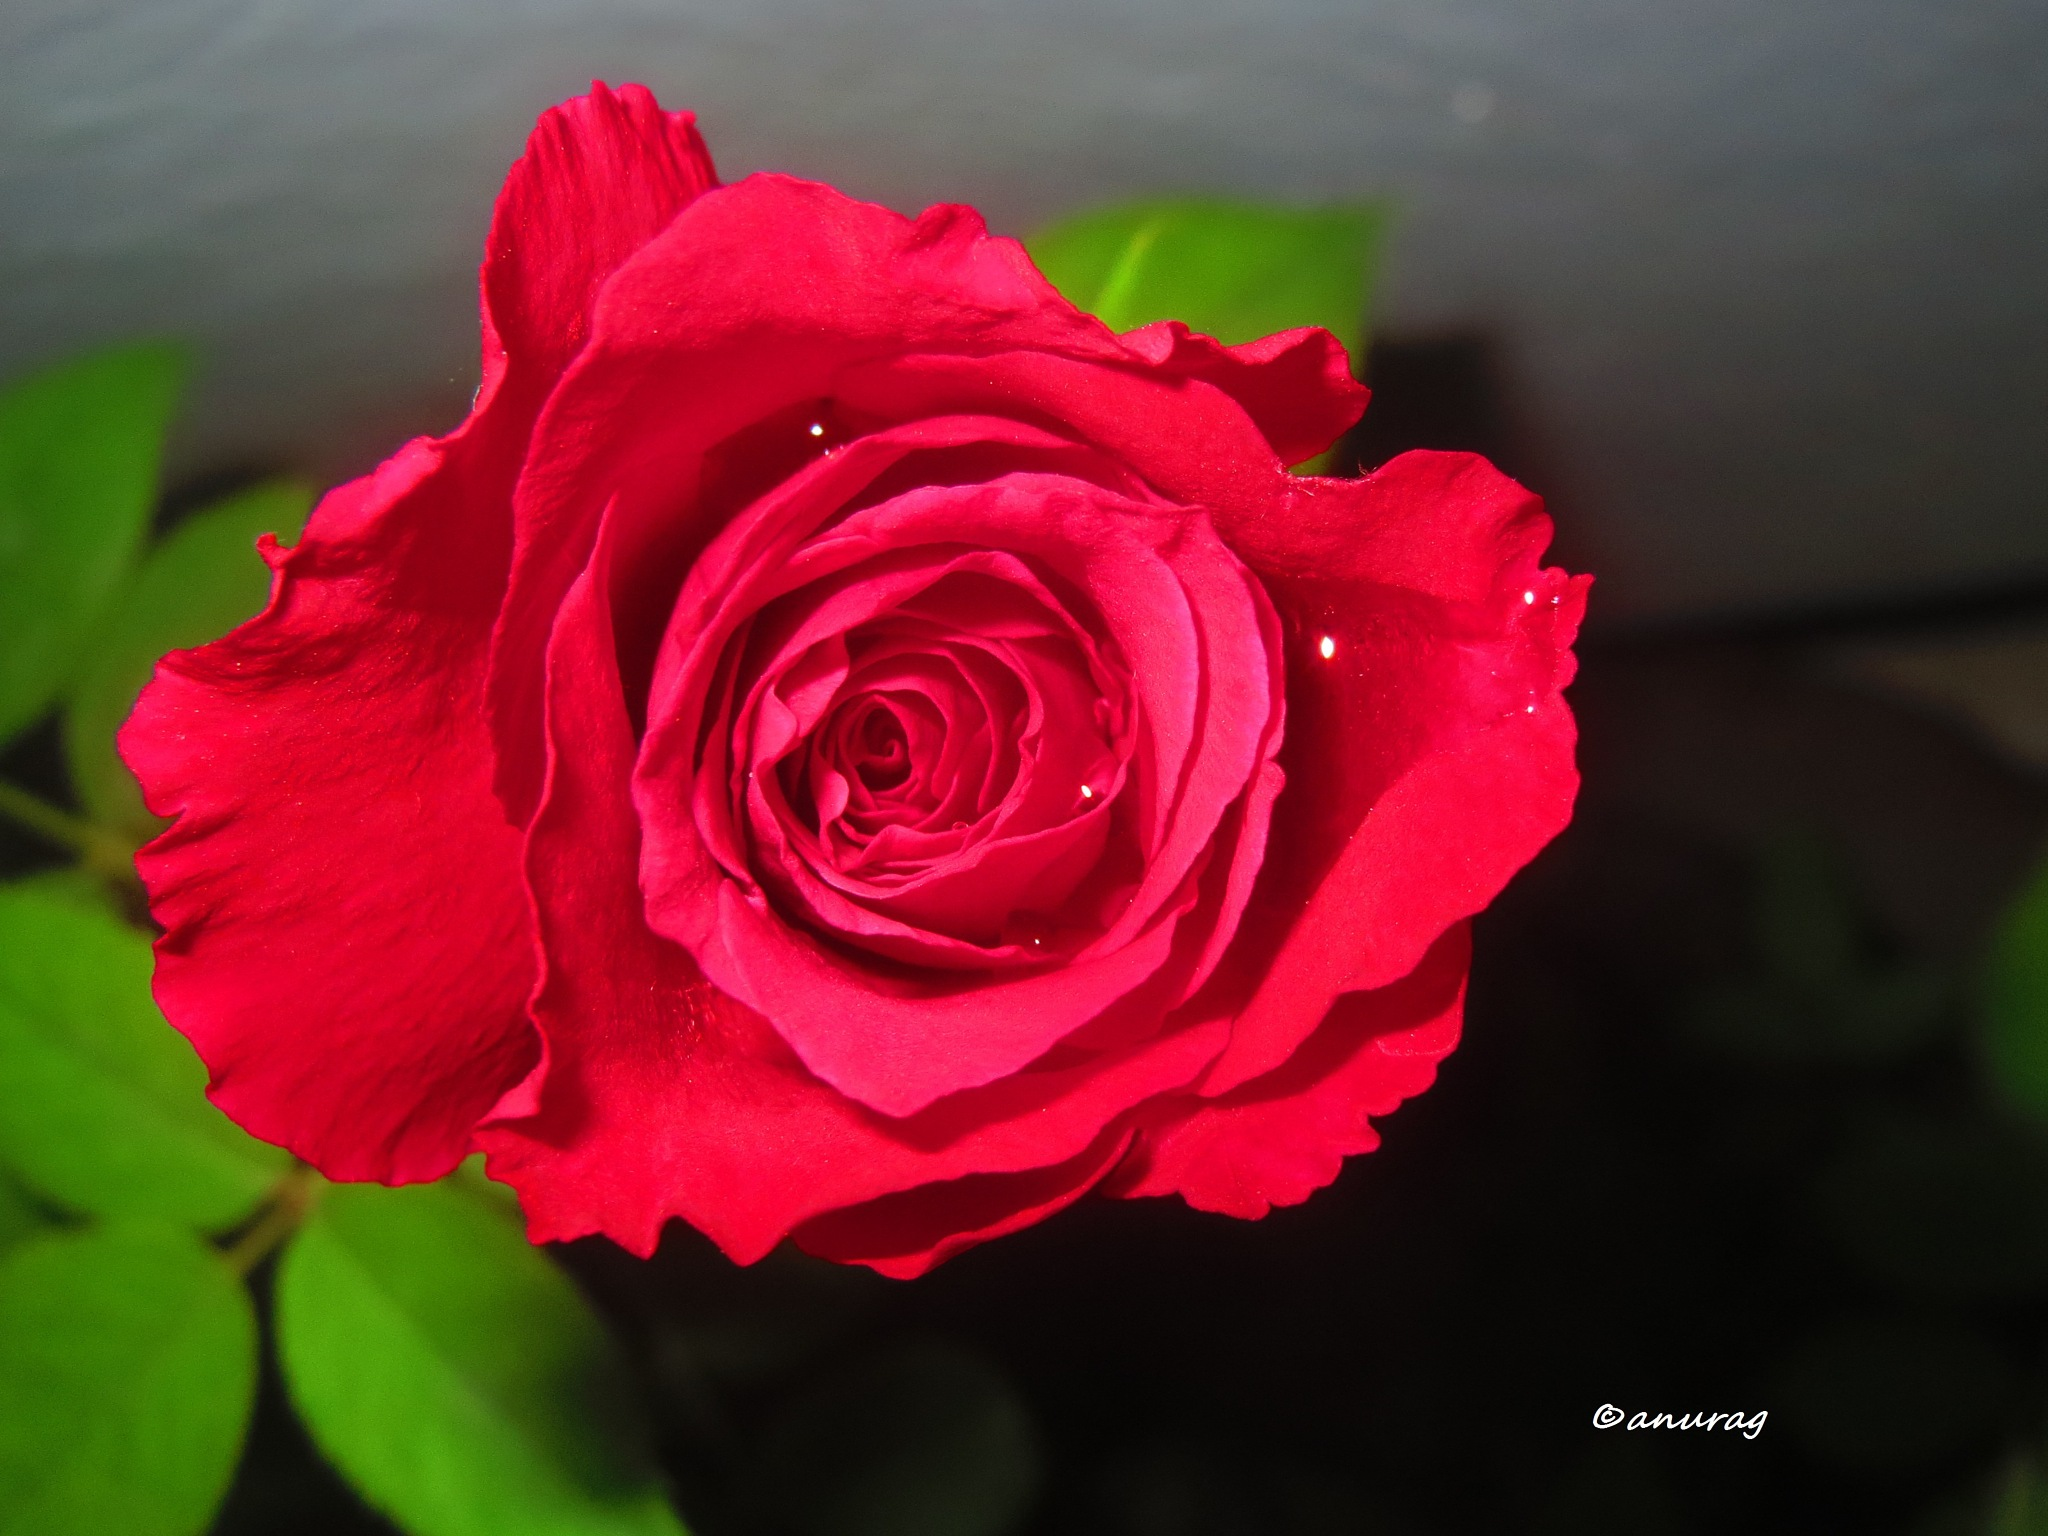 rose by anurag